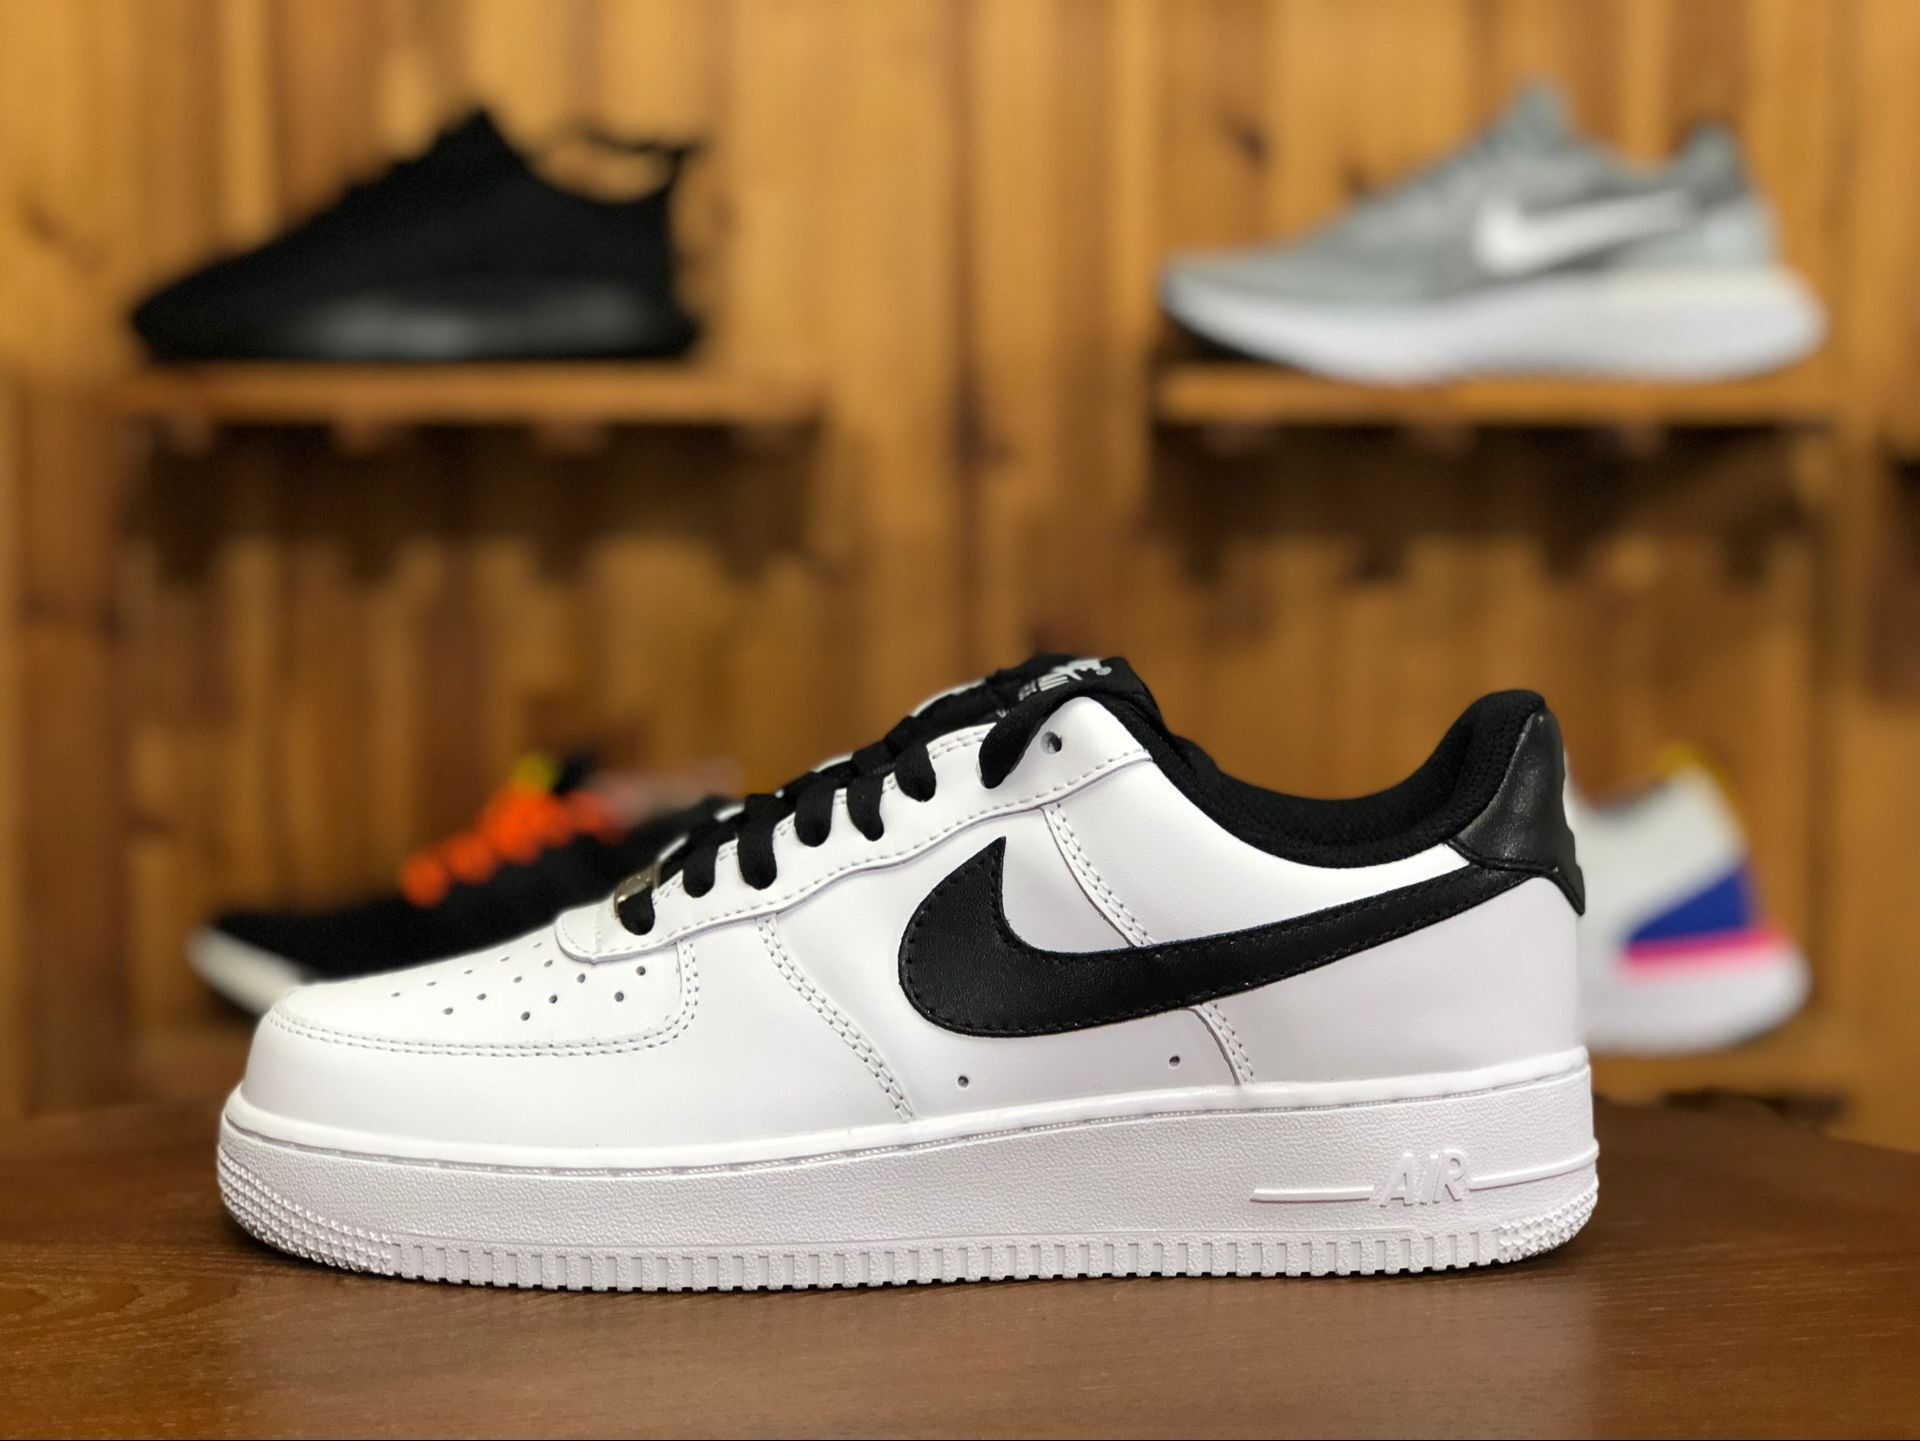 Buy Nike Air Force 1 Low White Black Shoes Online 820266 101 Nike Air Force Black Nike Air Force Nike Air Force Ones